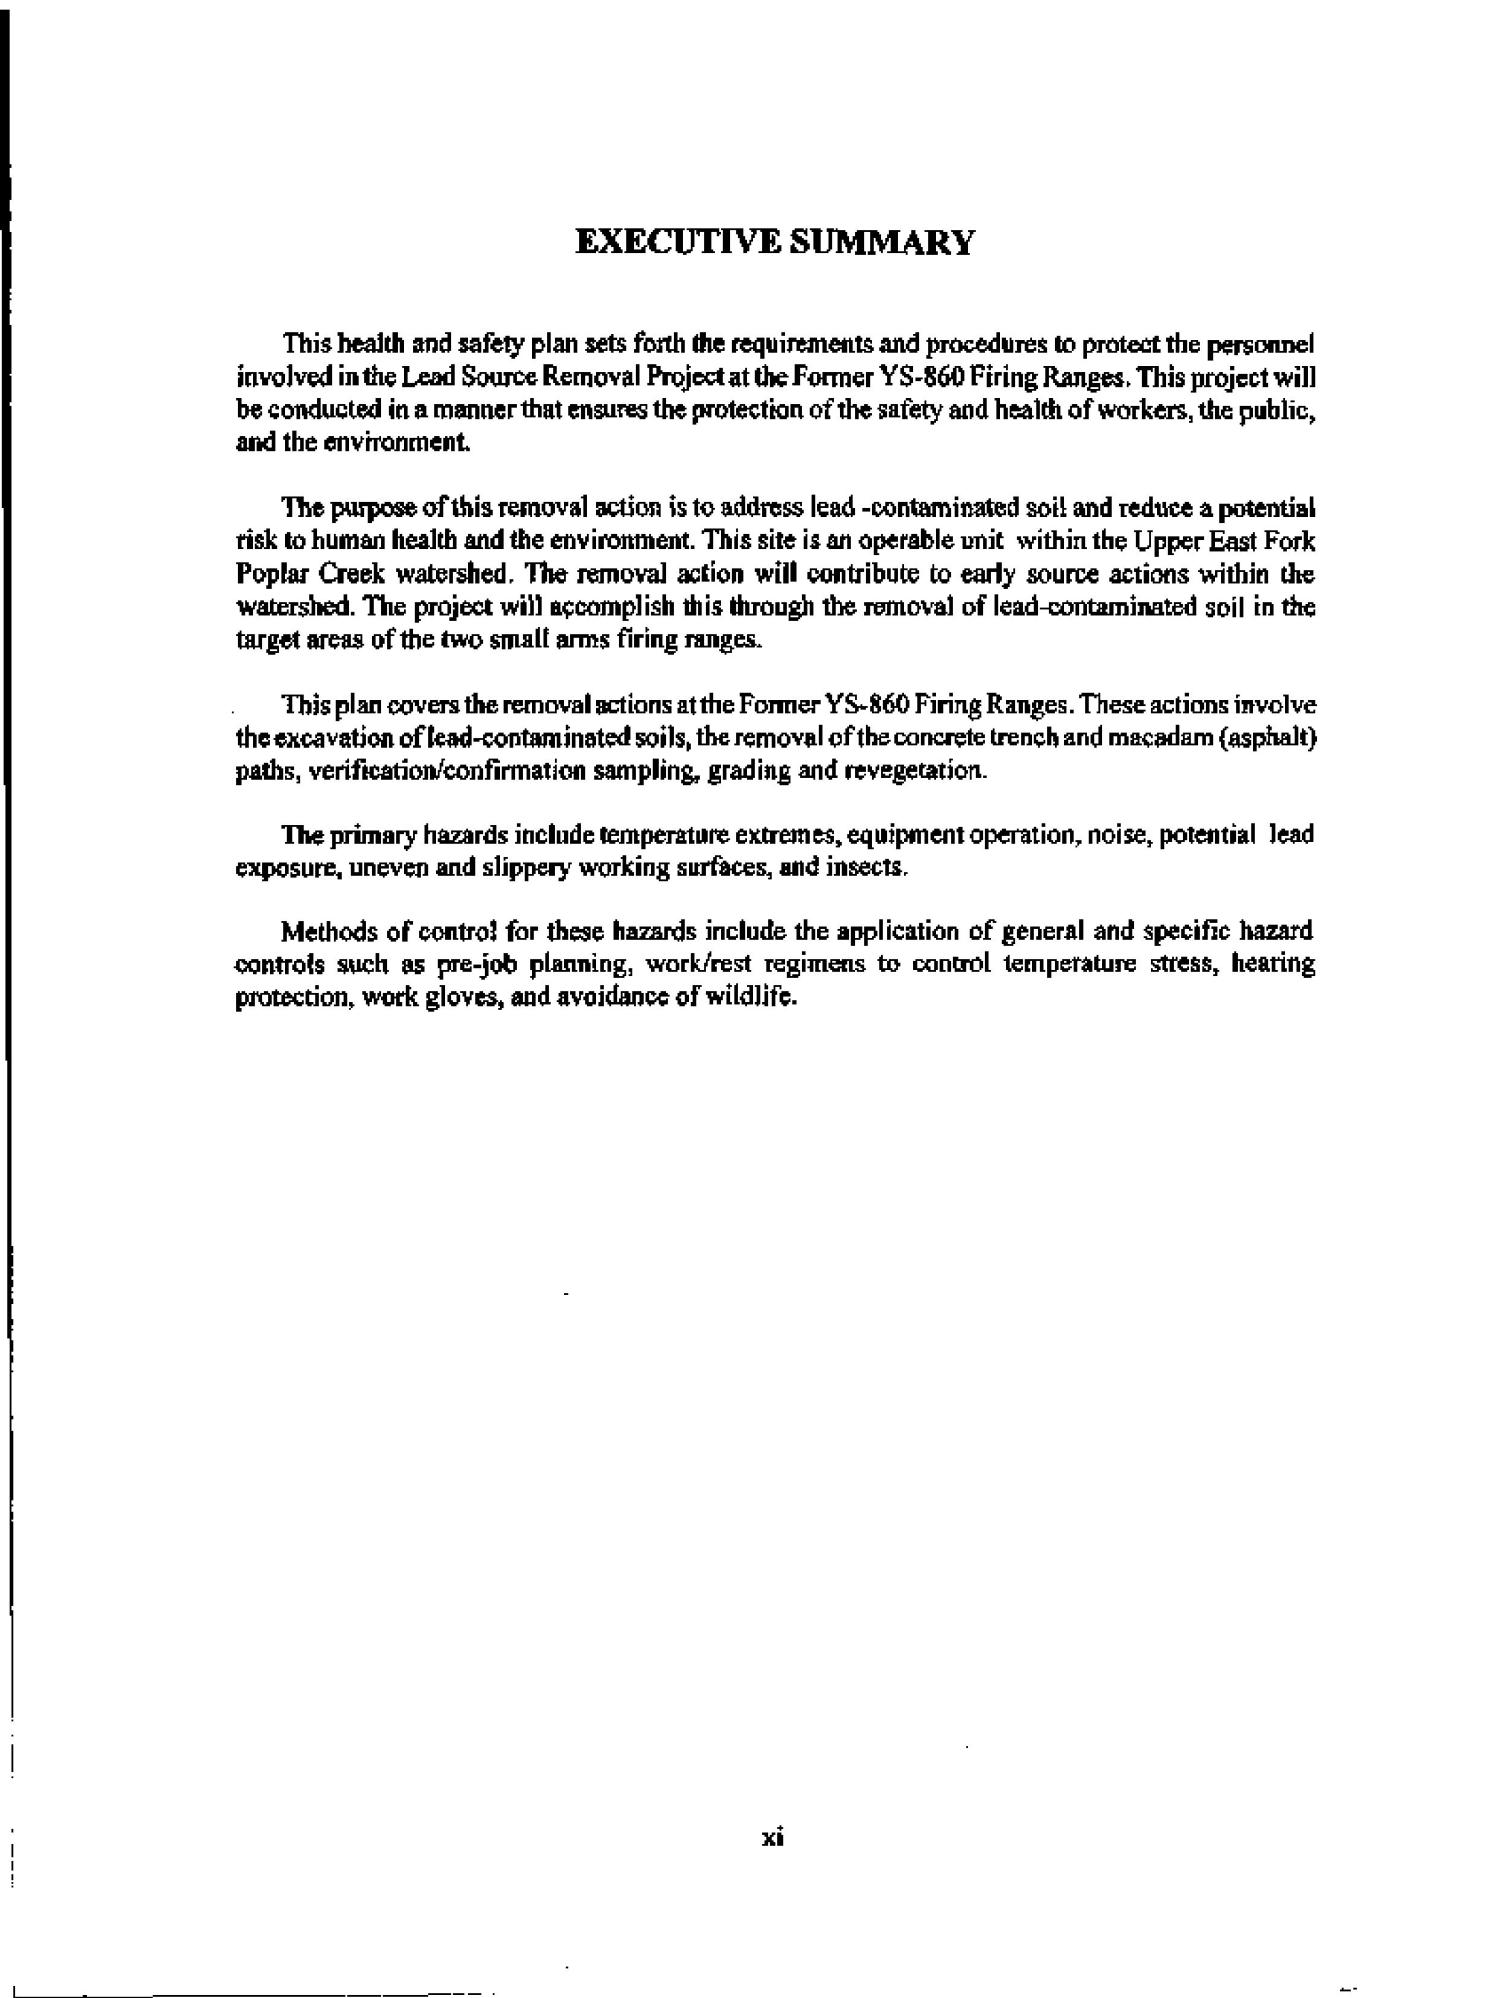 Health and safety plan for the removal action at the former YS-860 Firing Ranges, Oak Ridge Y-12 Plant, Oak Ridge, Tennessee                                                                                                      [Sequence #]: 10 of 52